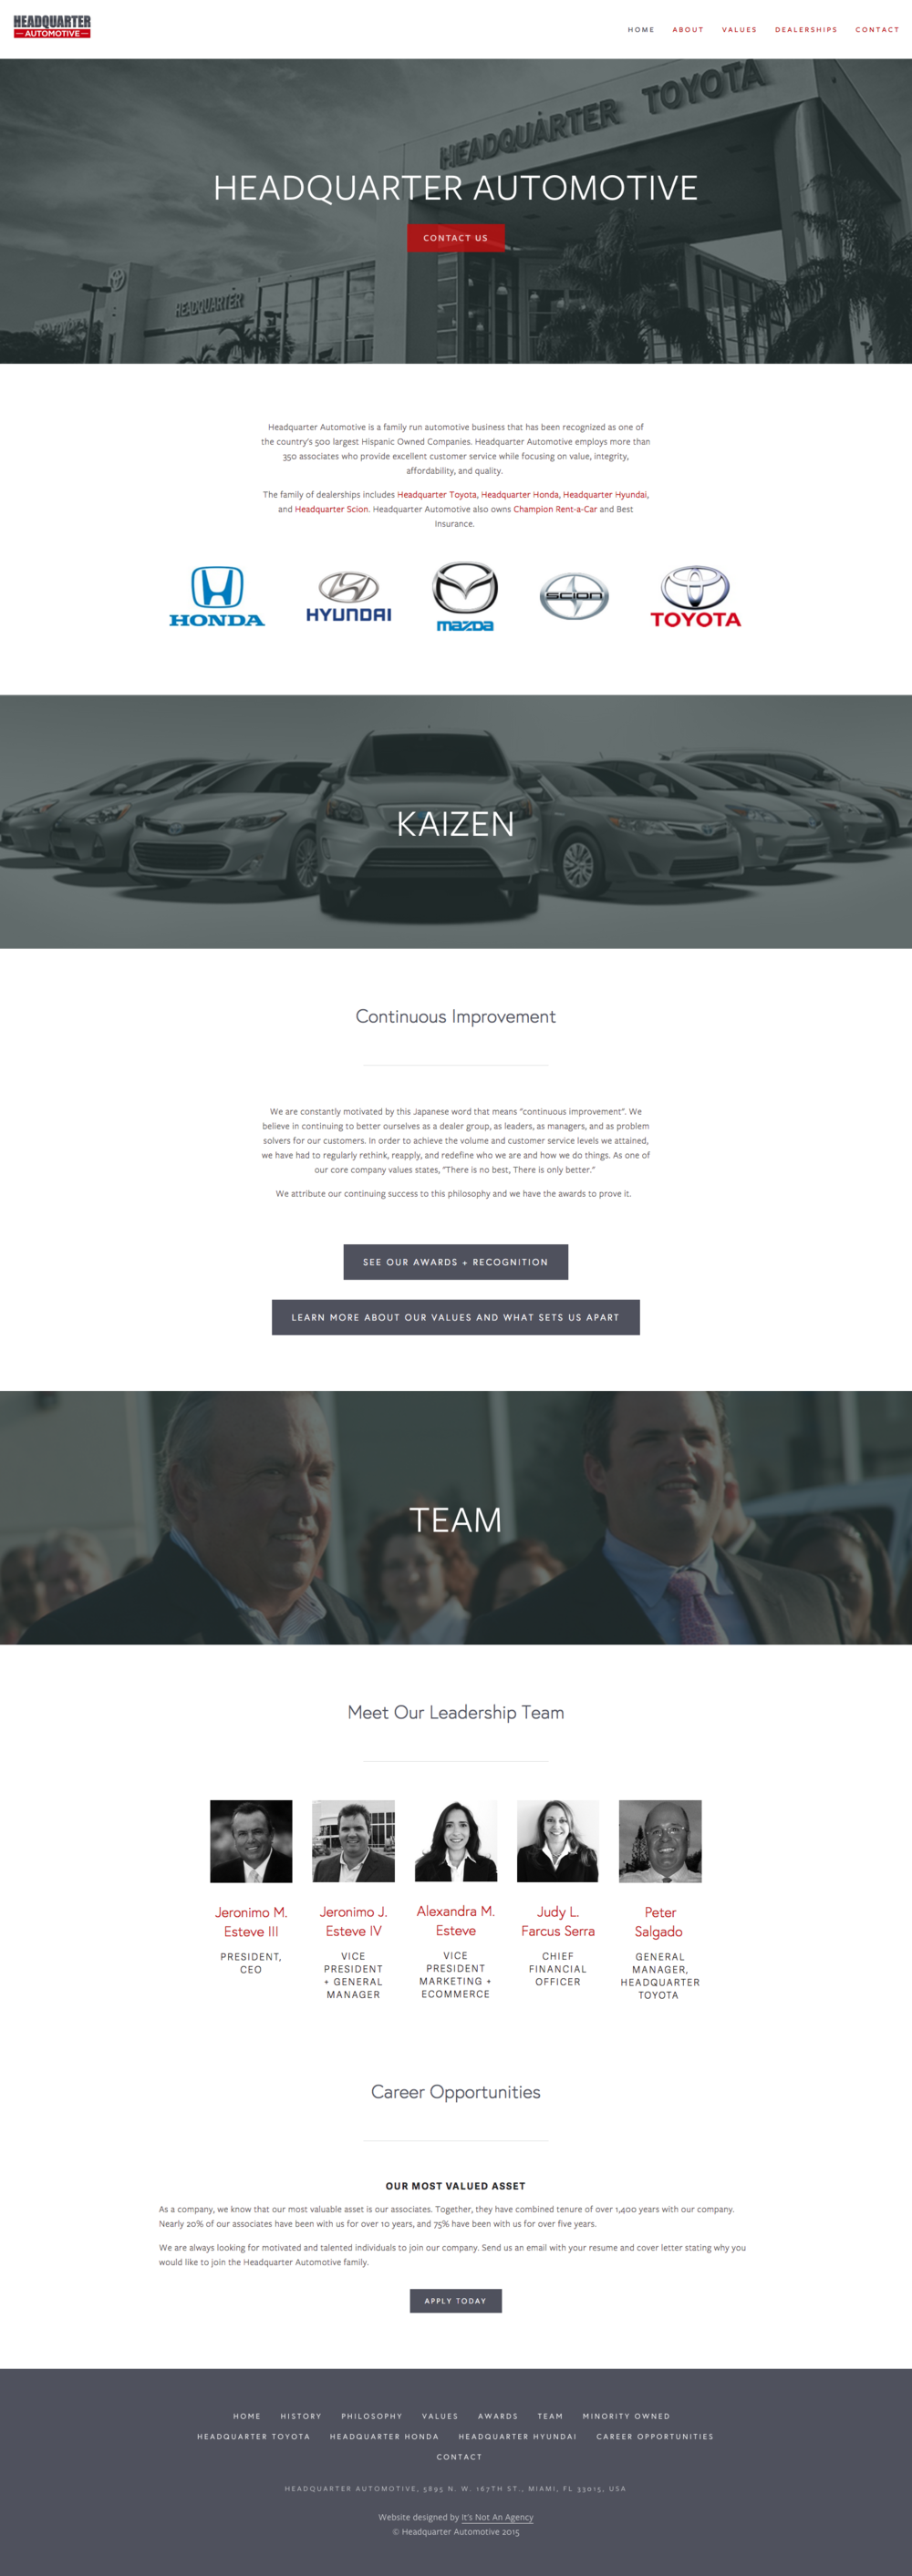 Automotive Website Design_Headquarter Automotive1.png